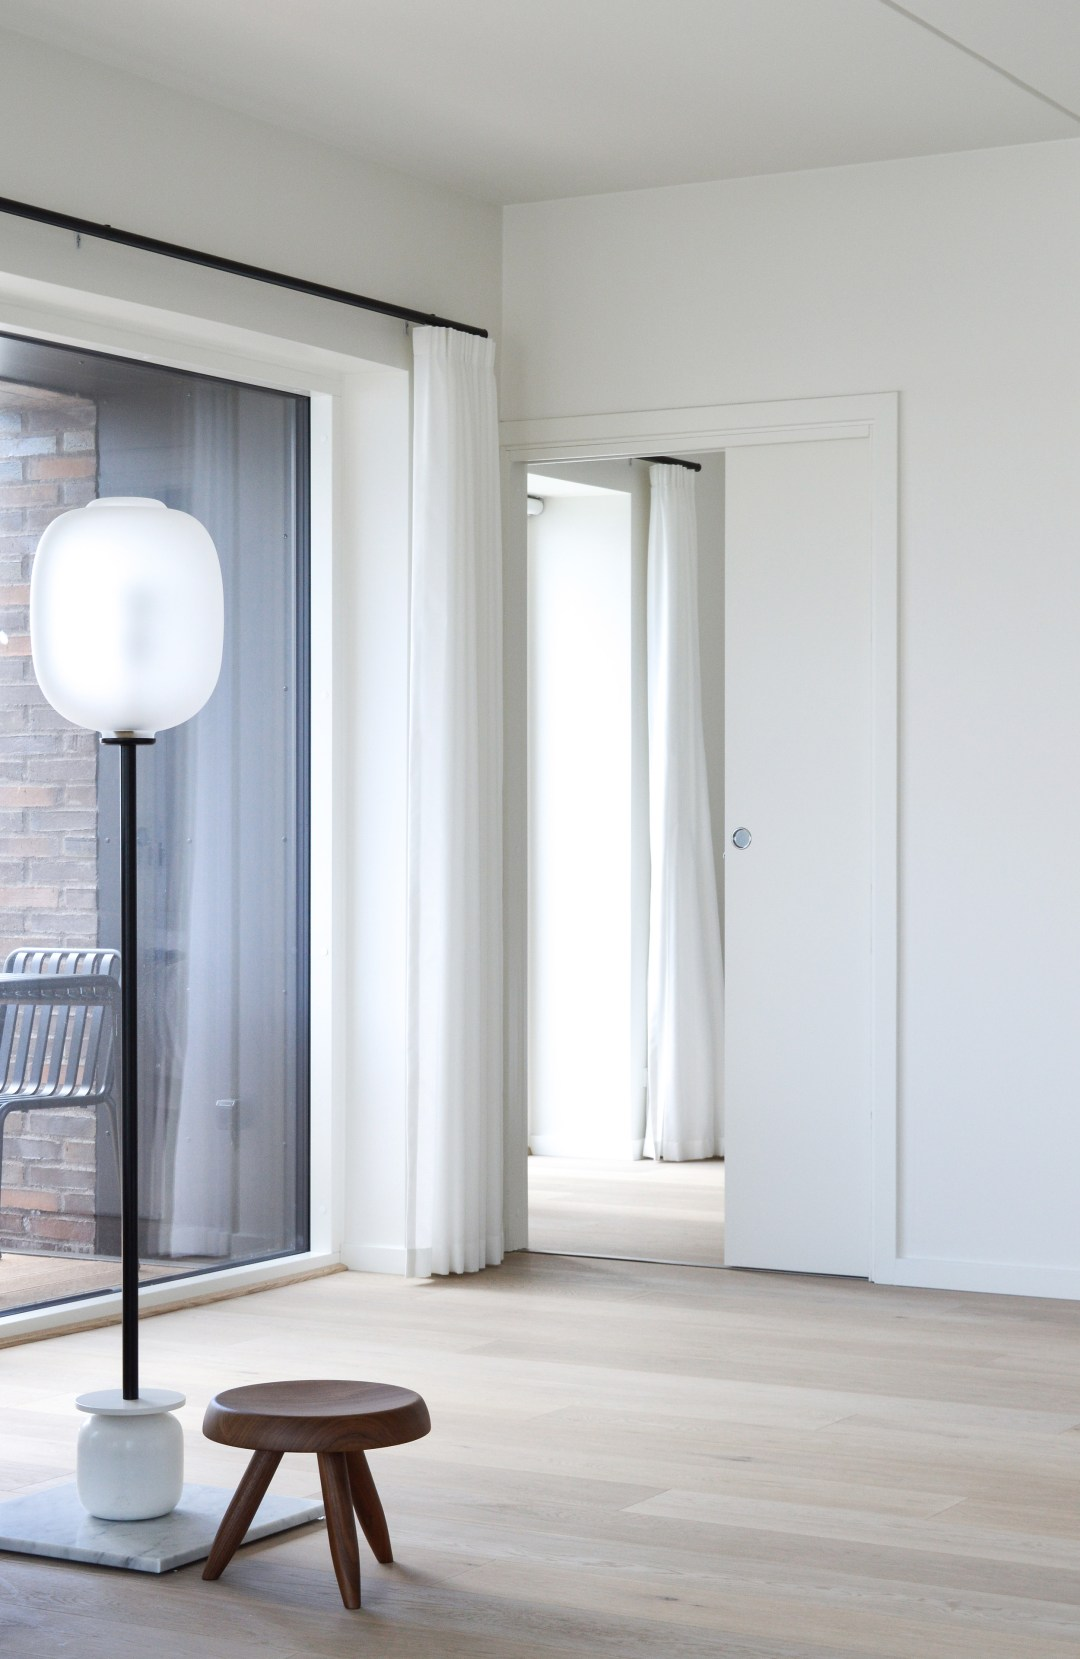 Stay Seaport, minimalist Scandinavian design apartment and Danish design hotel in Copenhagen